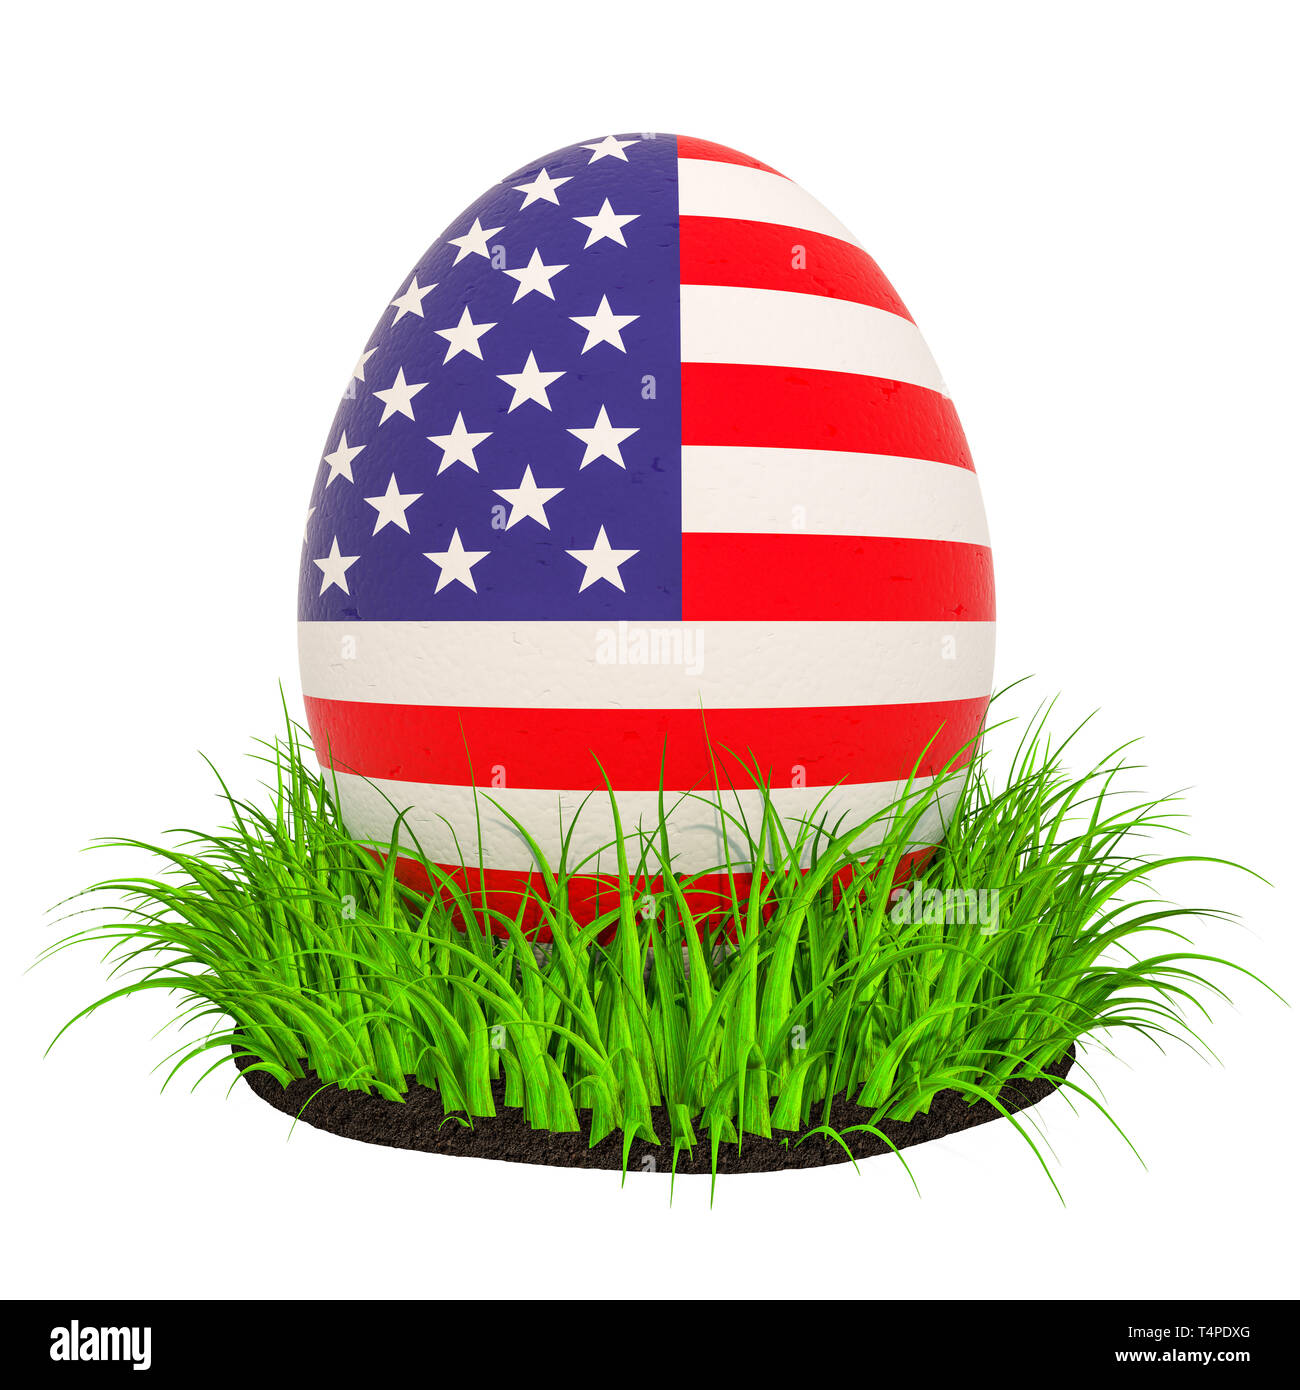 Easter egg with flag of the USA in the green grass, 9D rendering